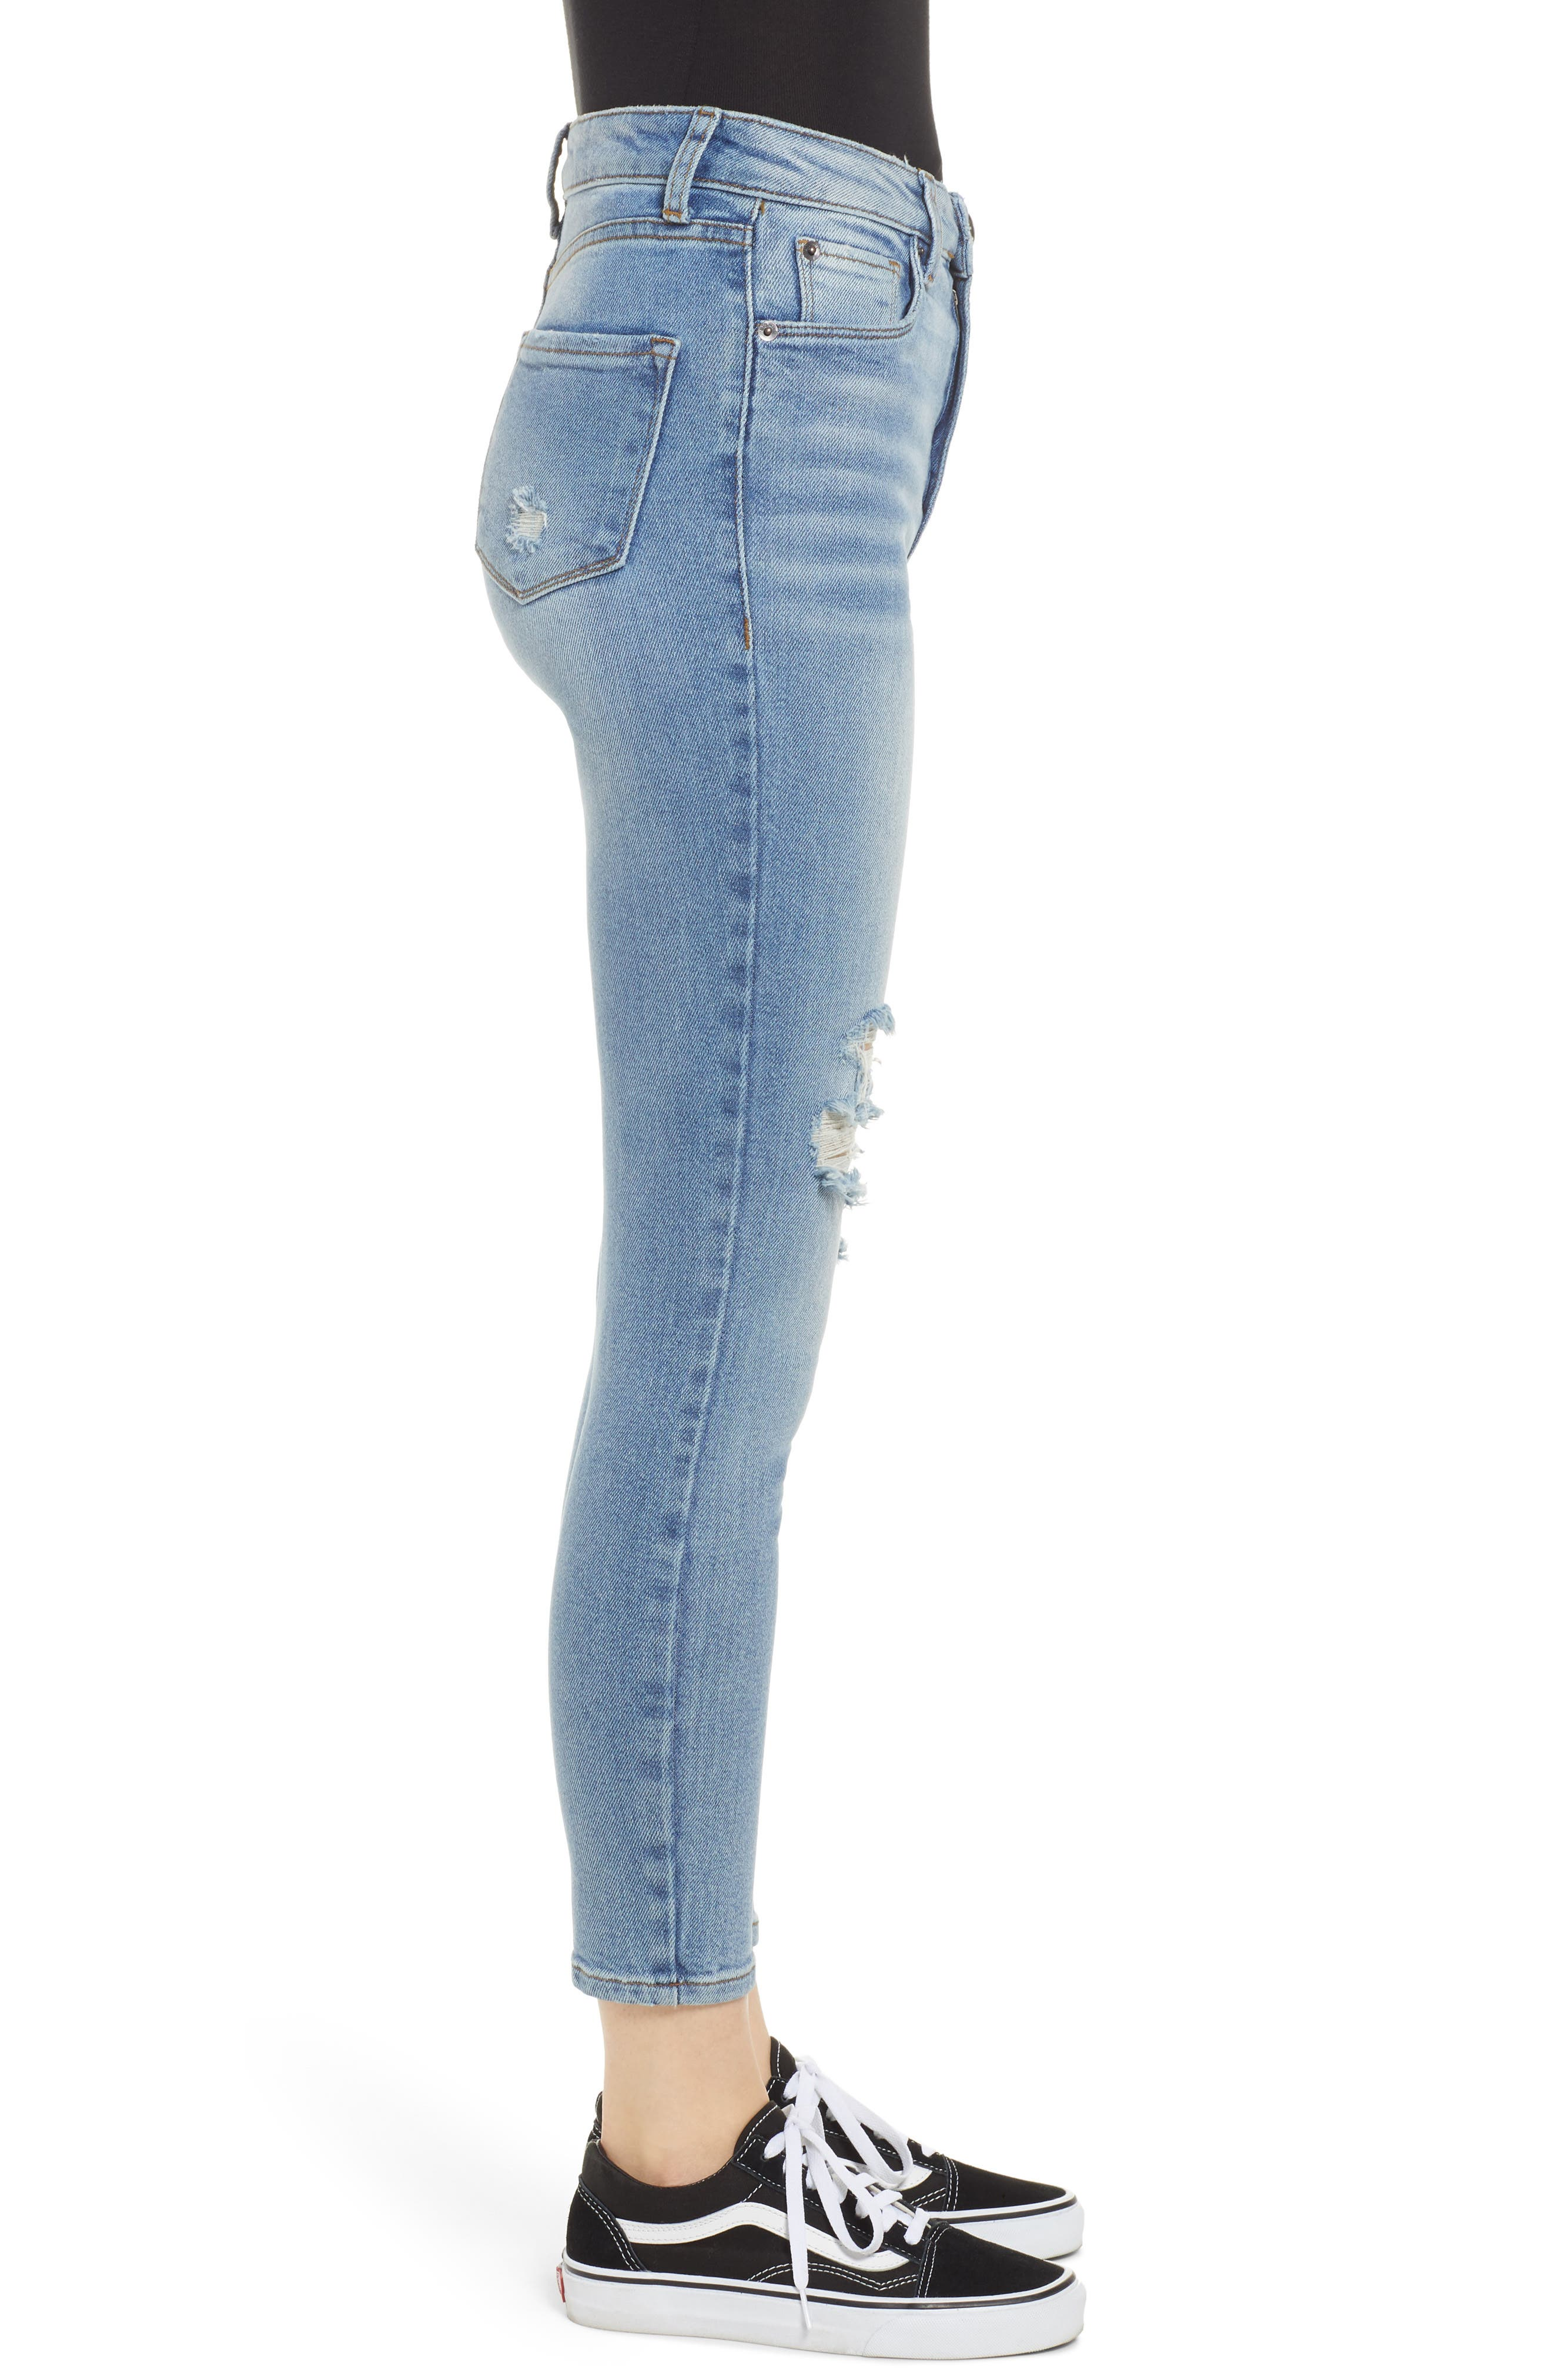 STS BLUE, Brie High Waist Ripped Skinny Jeans, Alternate thumbnail 4, color, 400